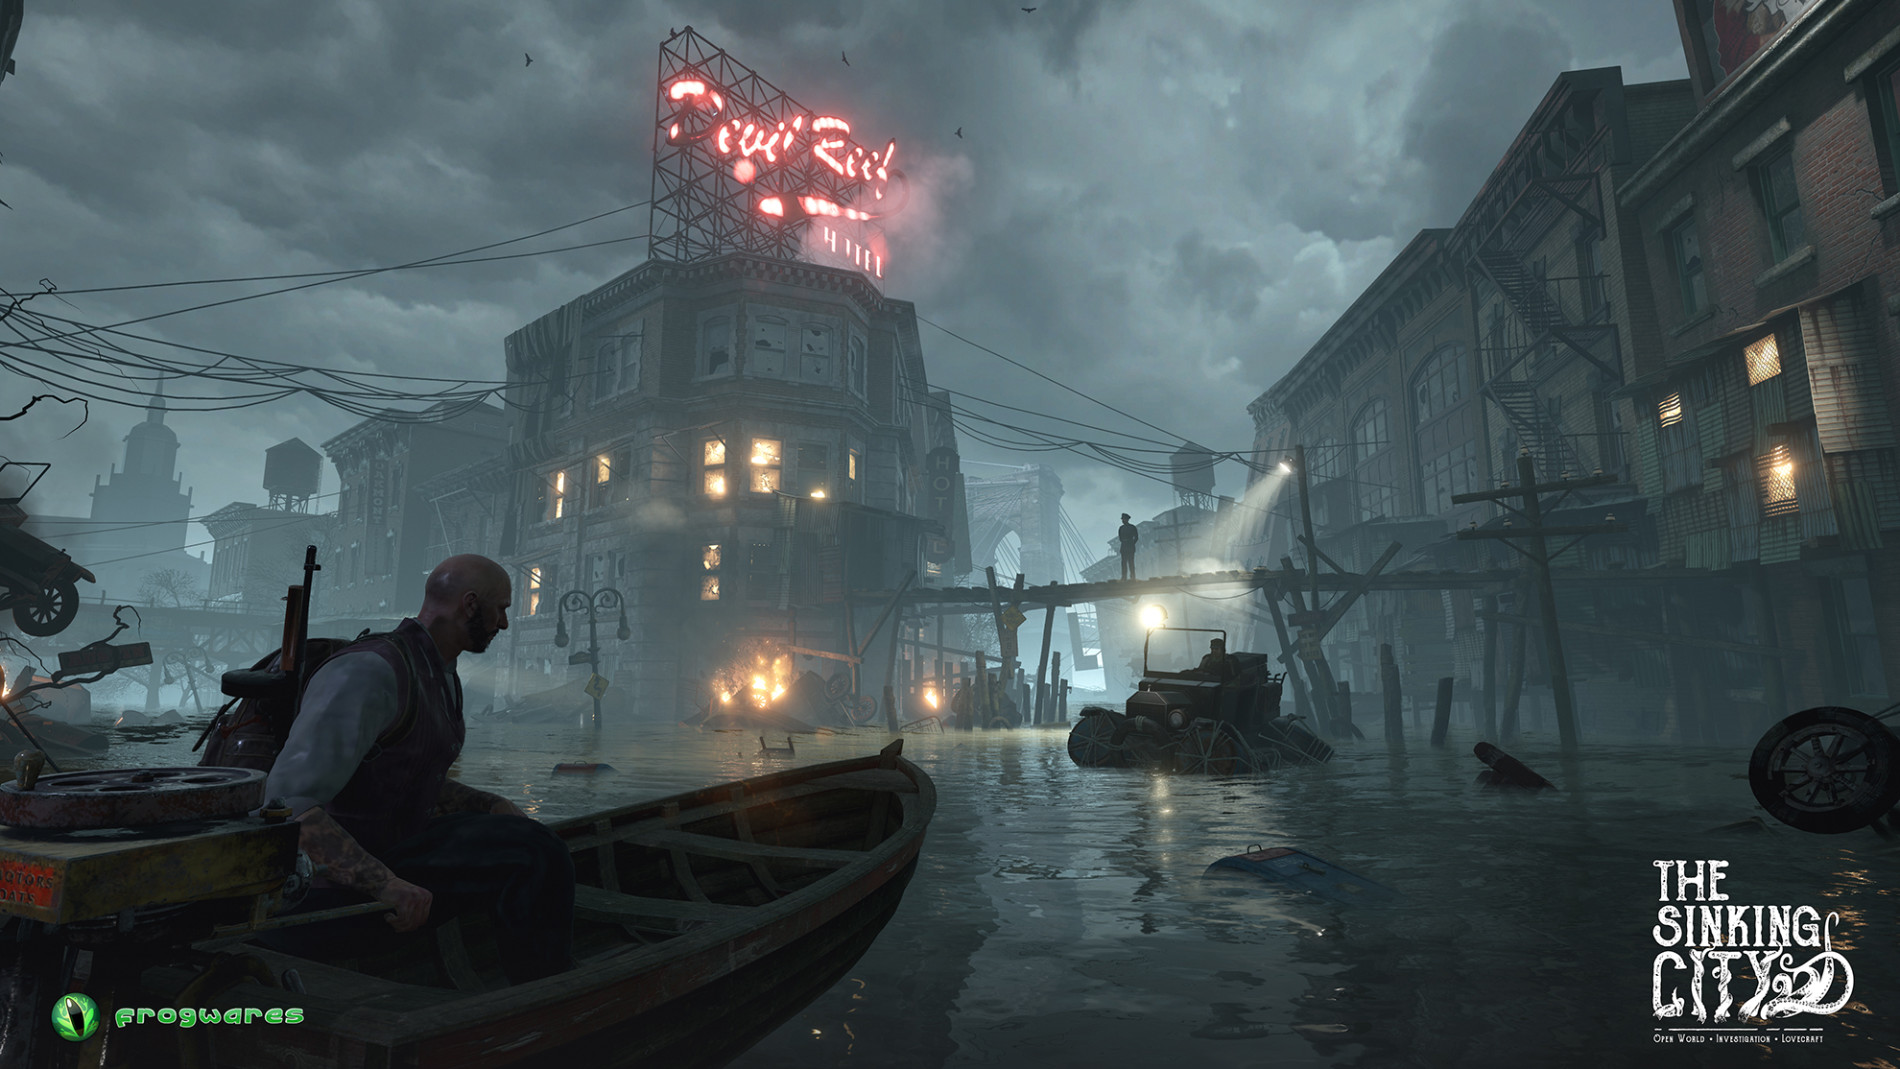 The Sinking City Gameplay image 2